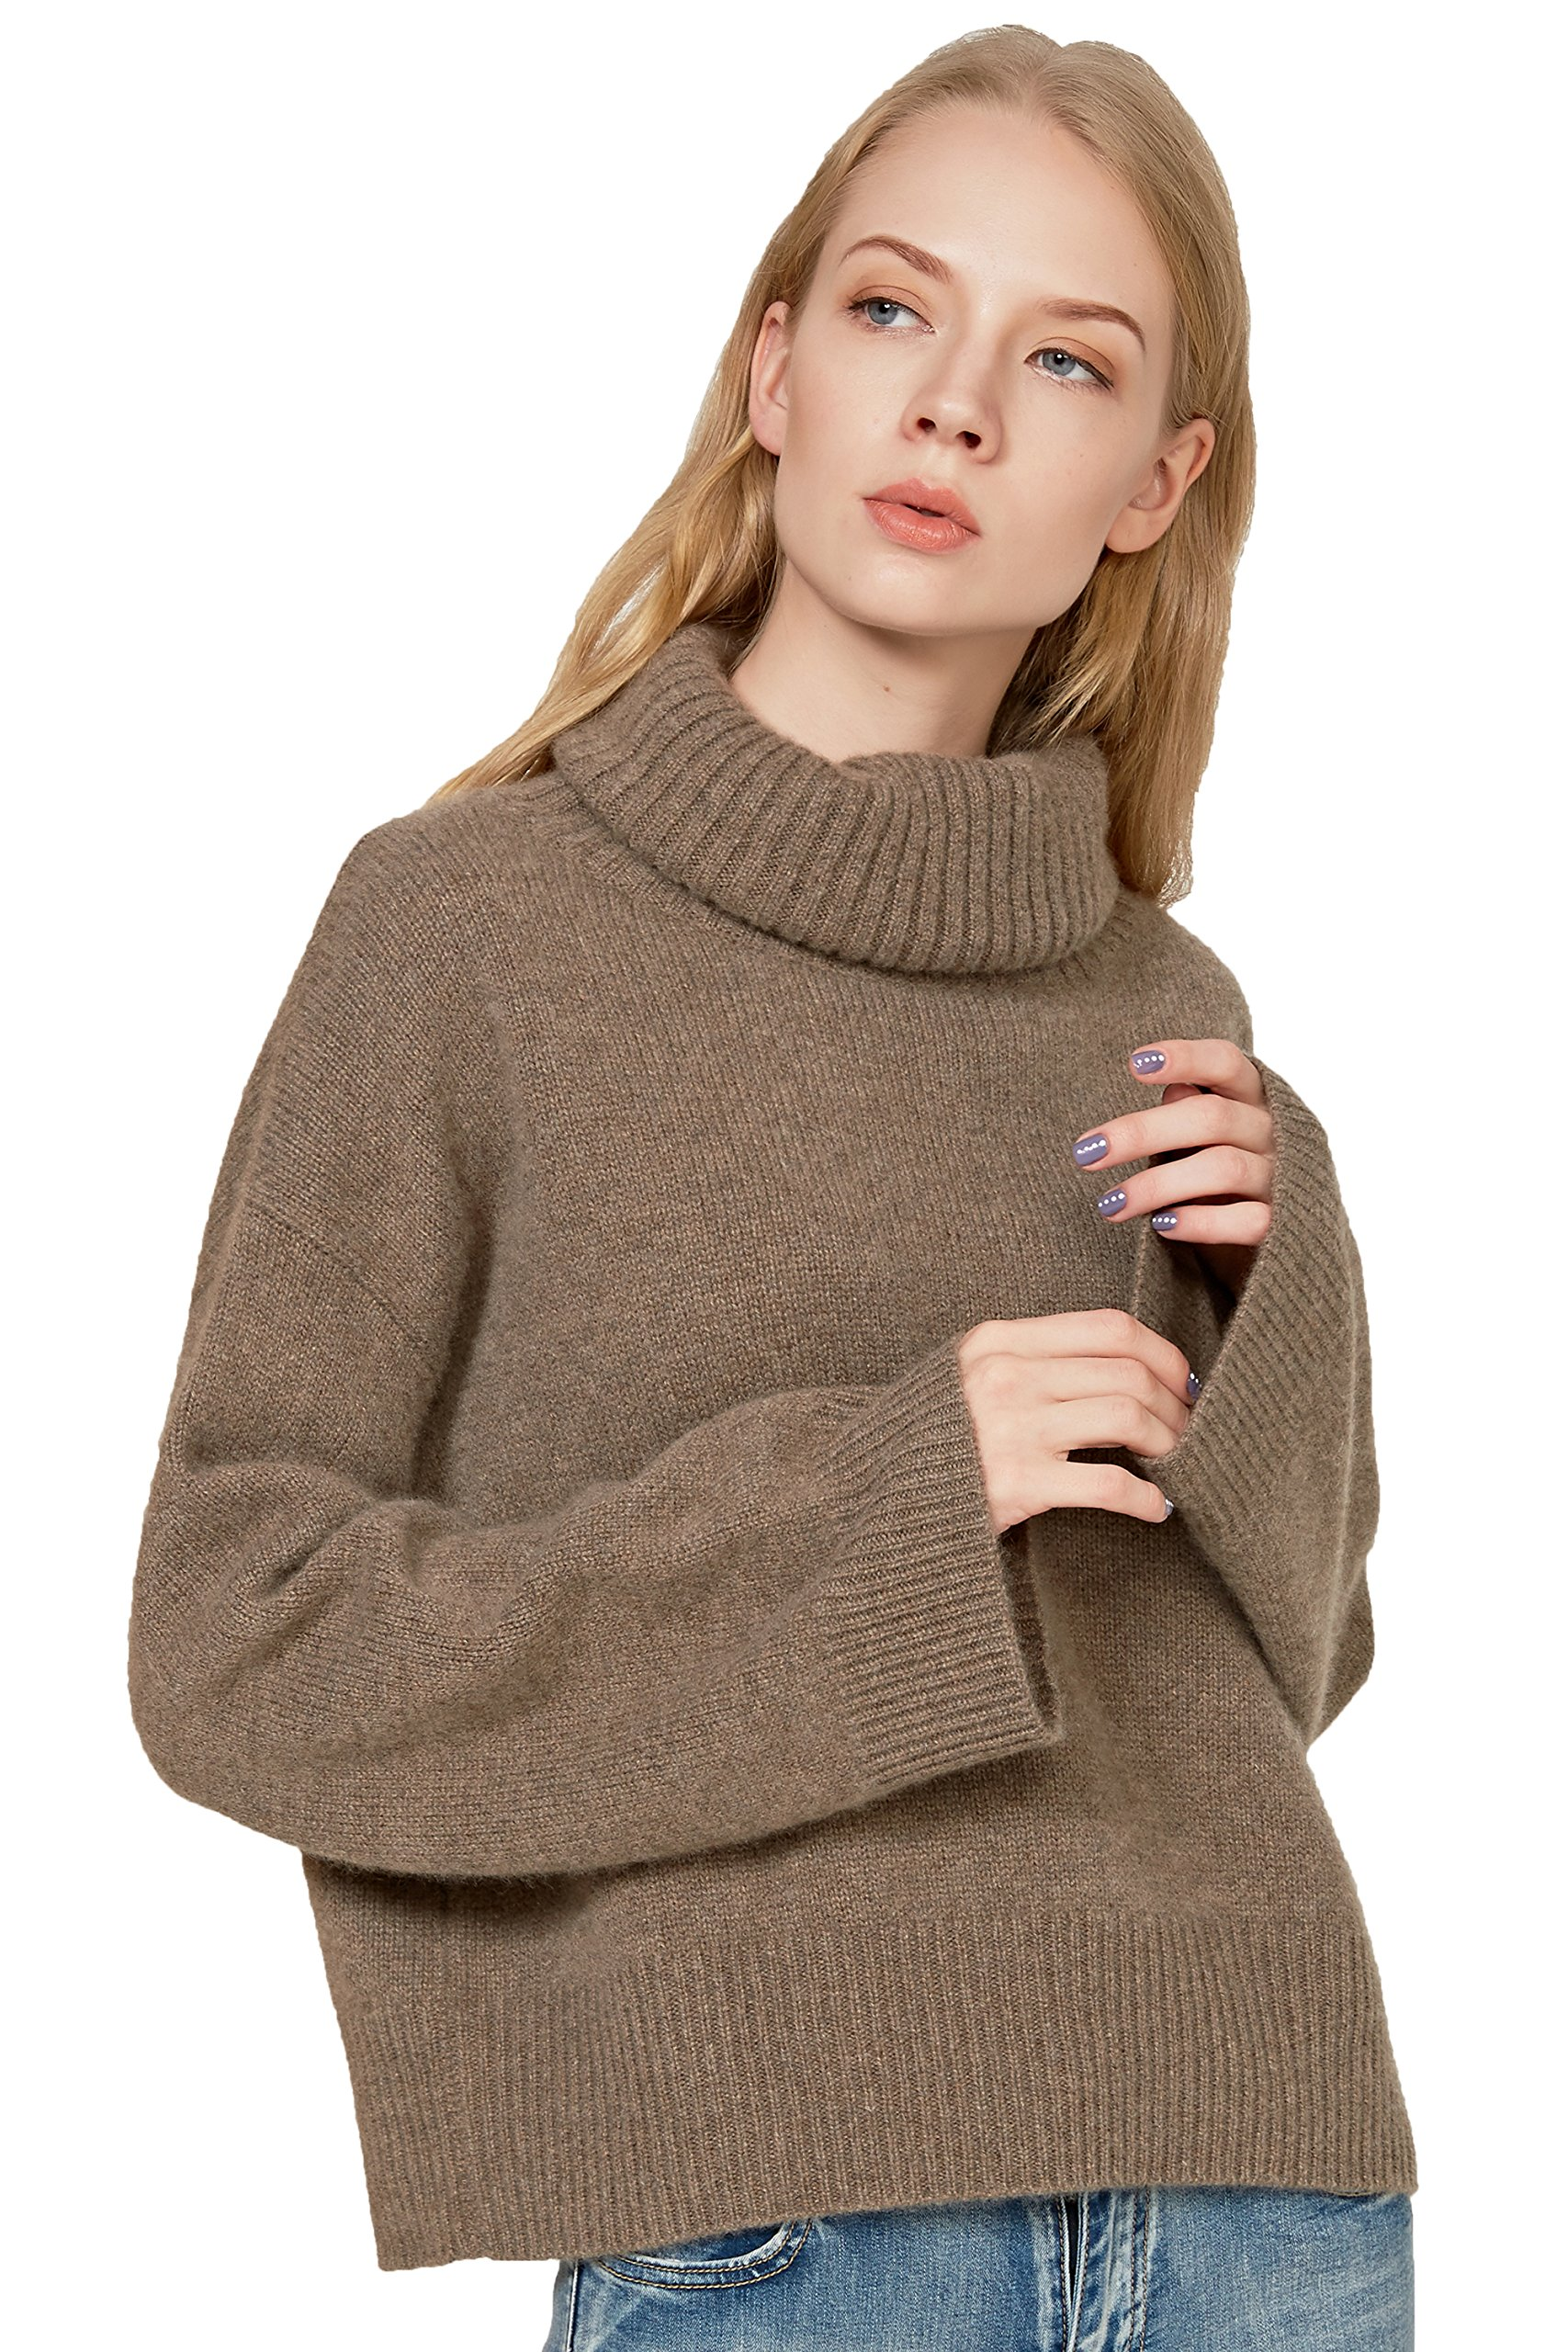 Chesslyre Camel 100 Cashmere Sweater Women,Tan Relaxed Fit High Neck Sweaters for Women Roll-neck Ladies Cashmere Sweaters